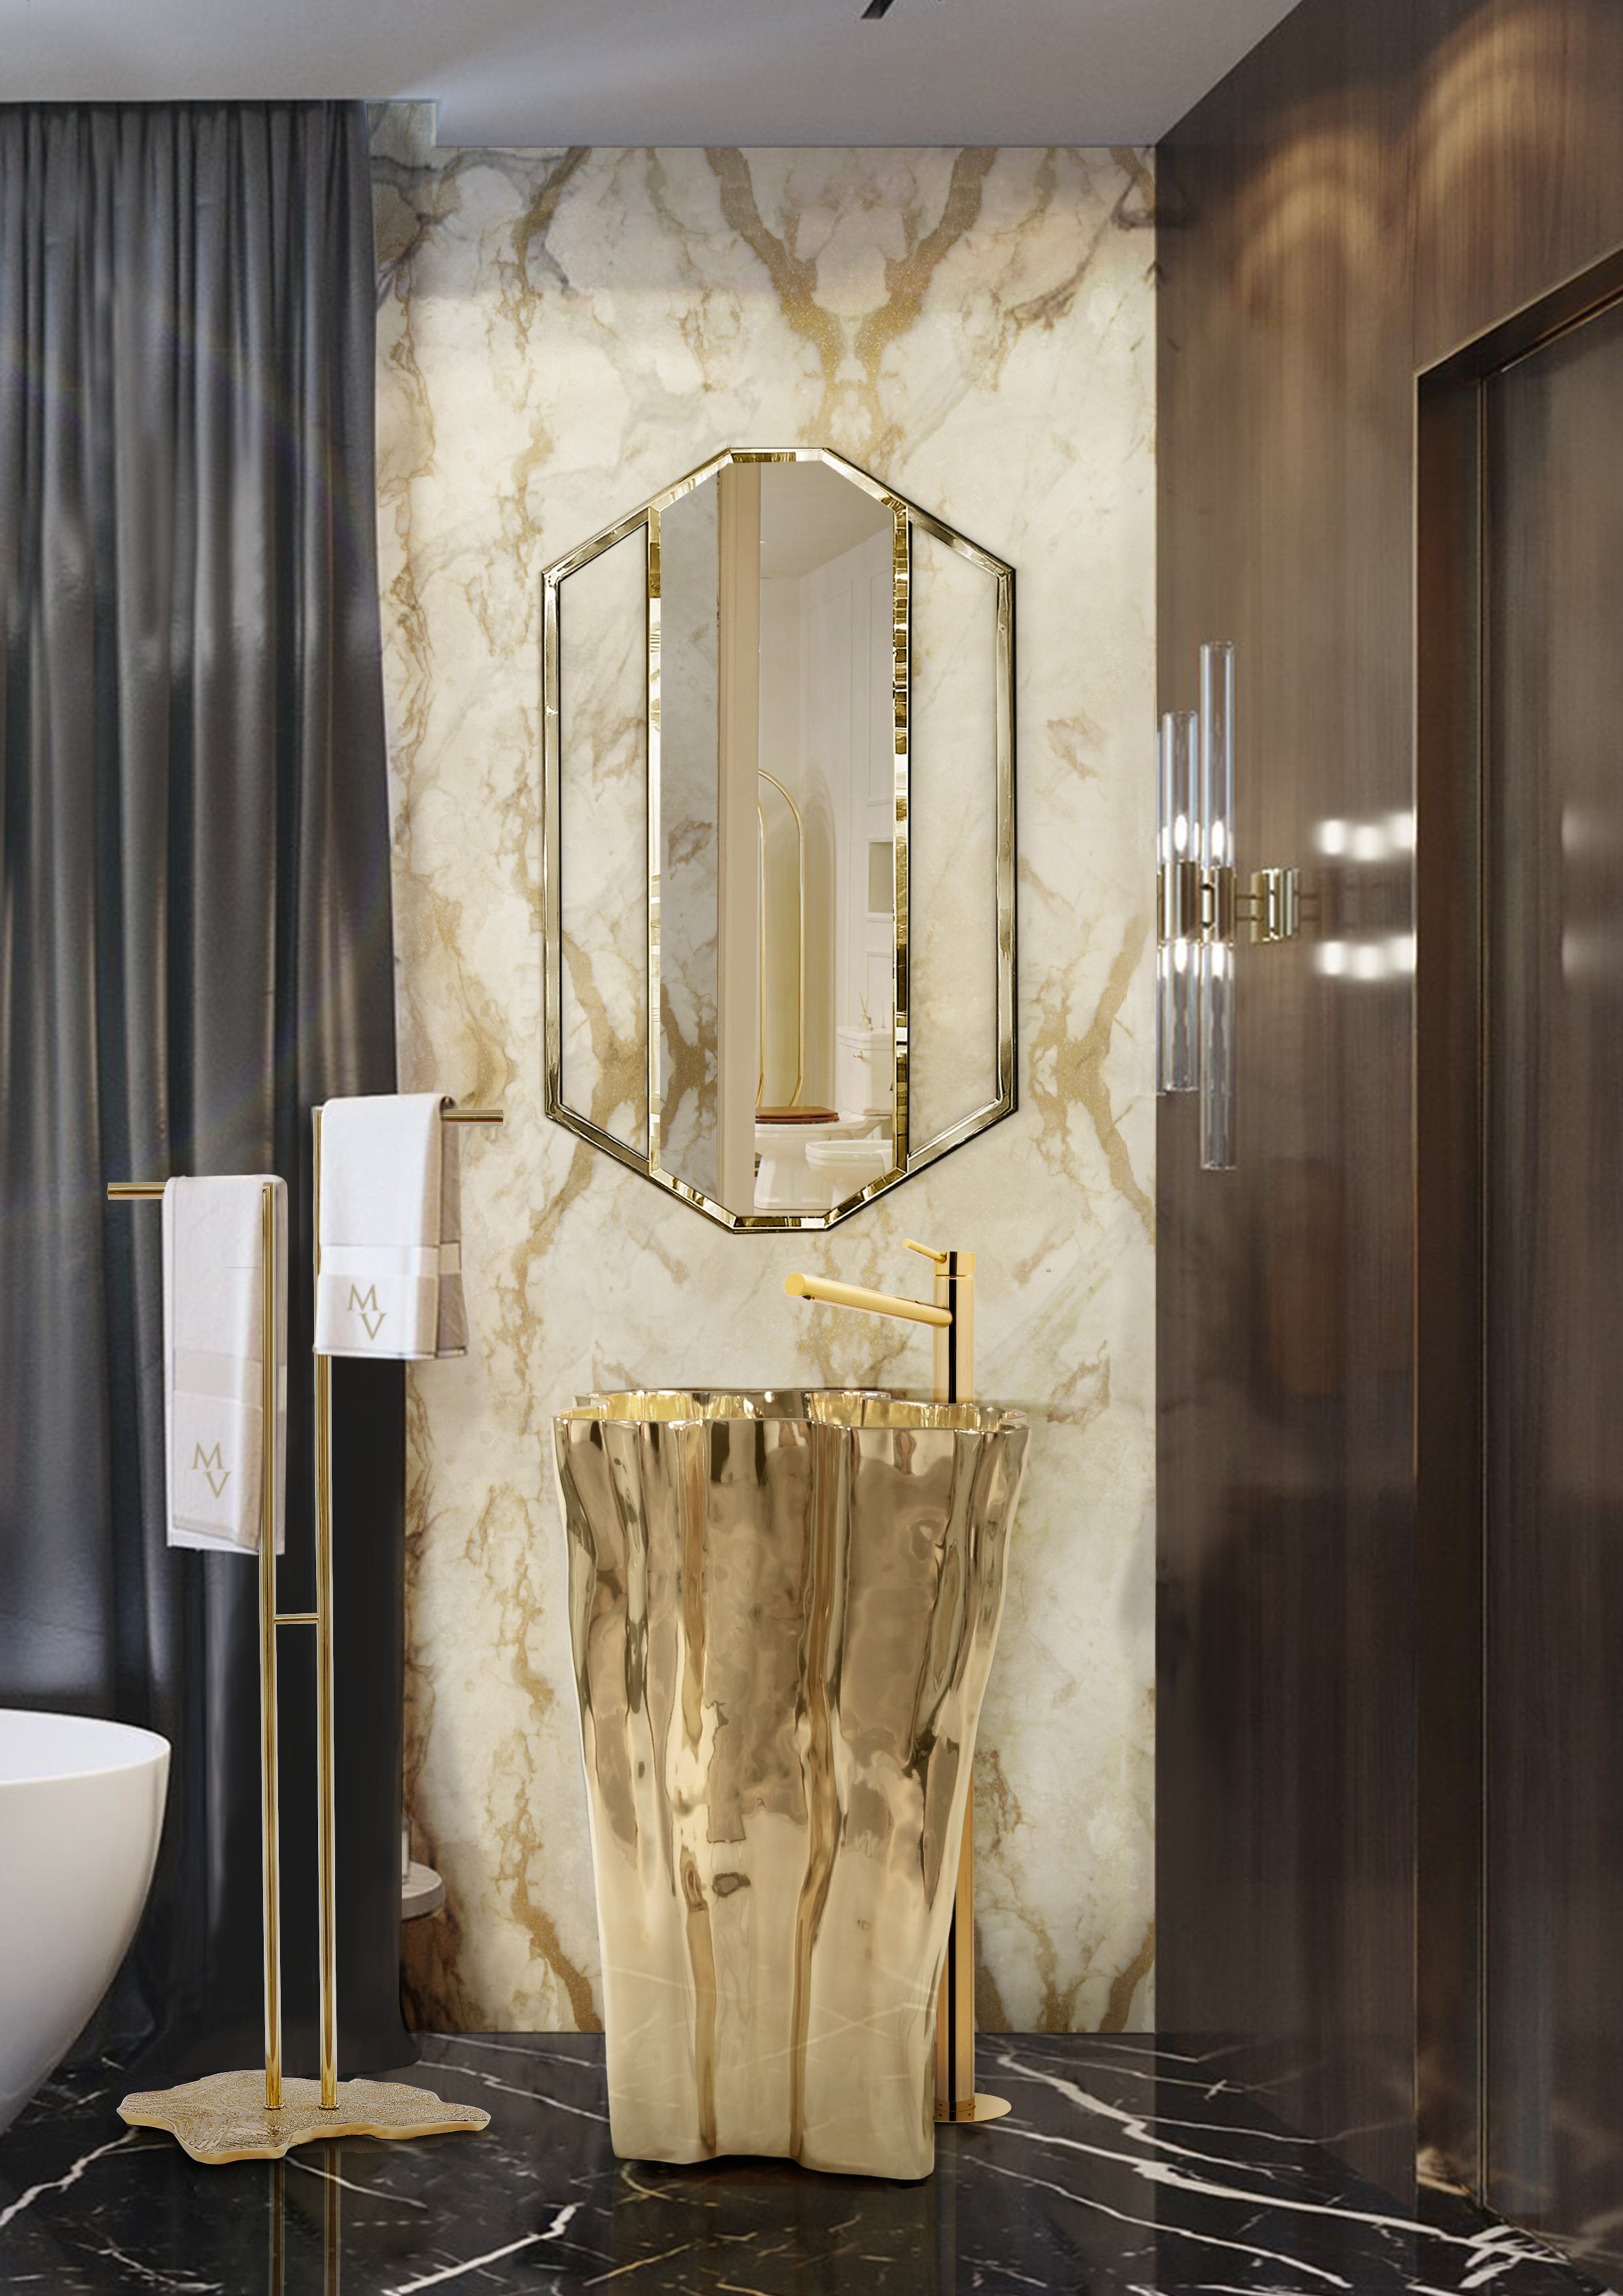 Decorating Bathroom with Golden Furniture Golden Furniture Decorating Bathroom with Golden Furniture luxury gold guest bathroom